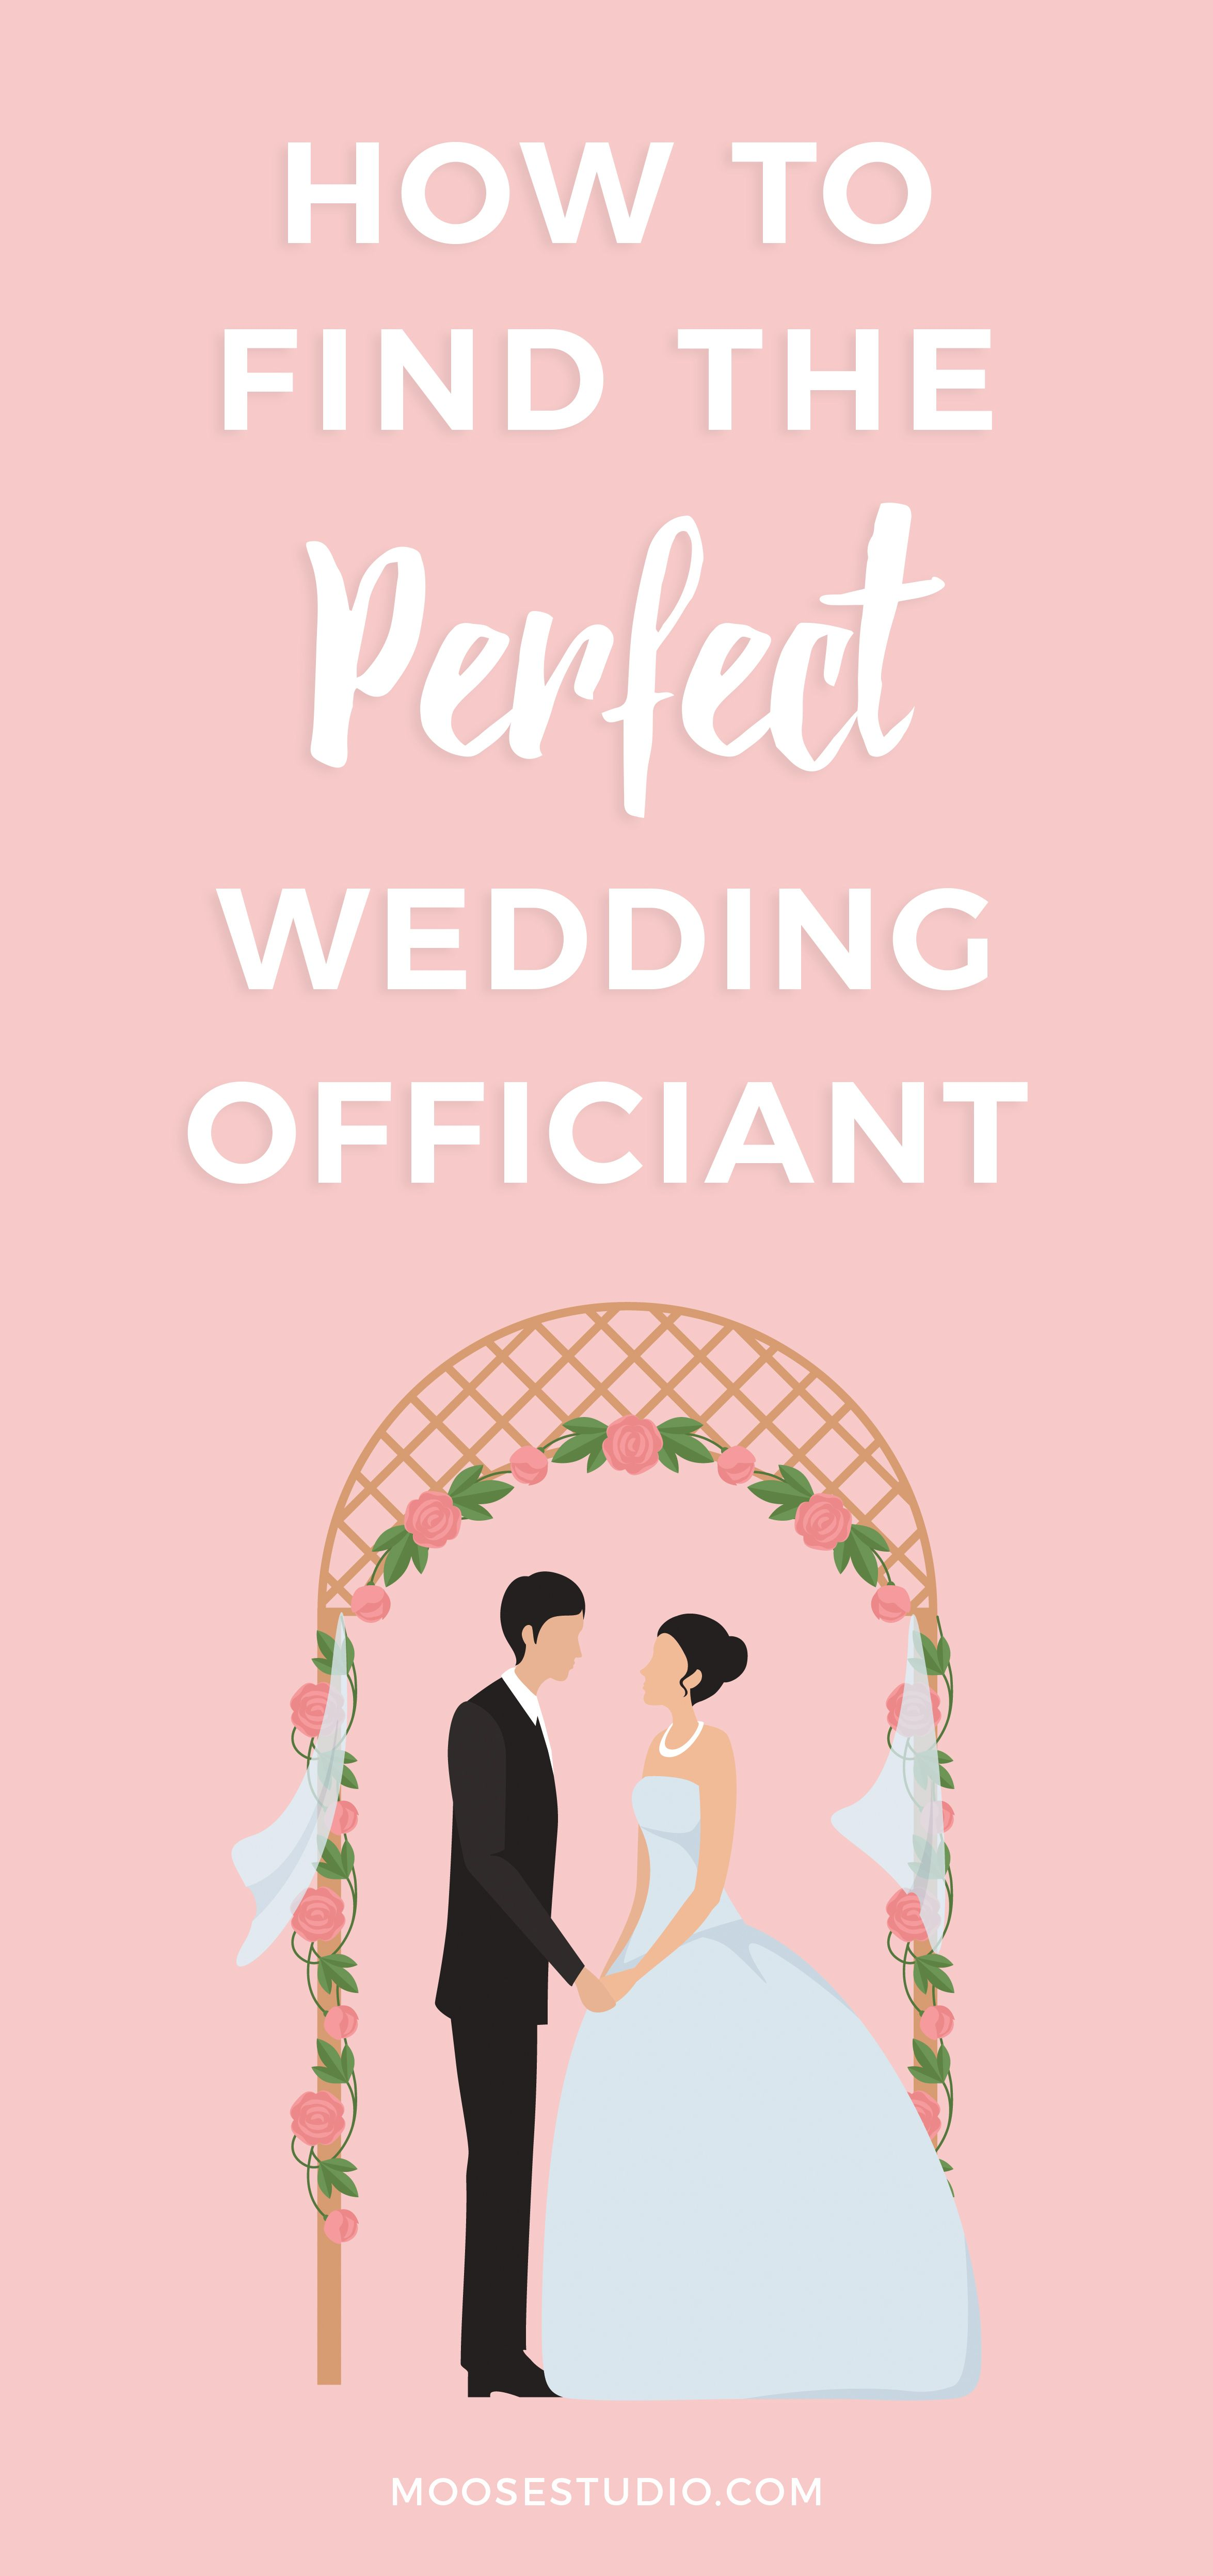 How To Find The Perfect Wedding Officiant For Your Ceremony Wedding Officiant Officiants Perfect Wedding